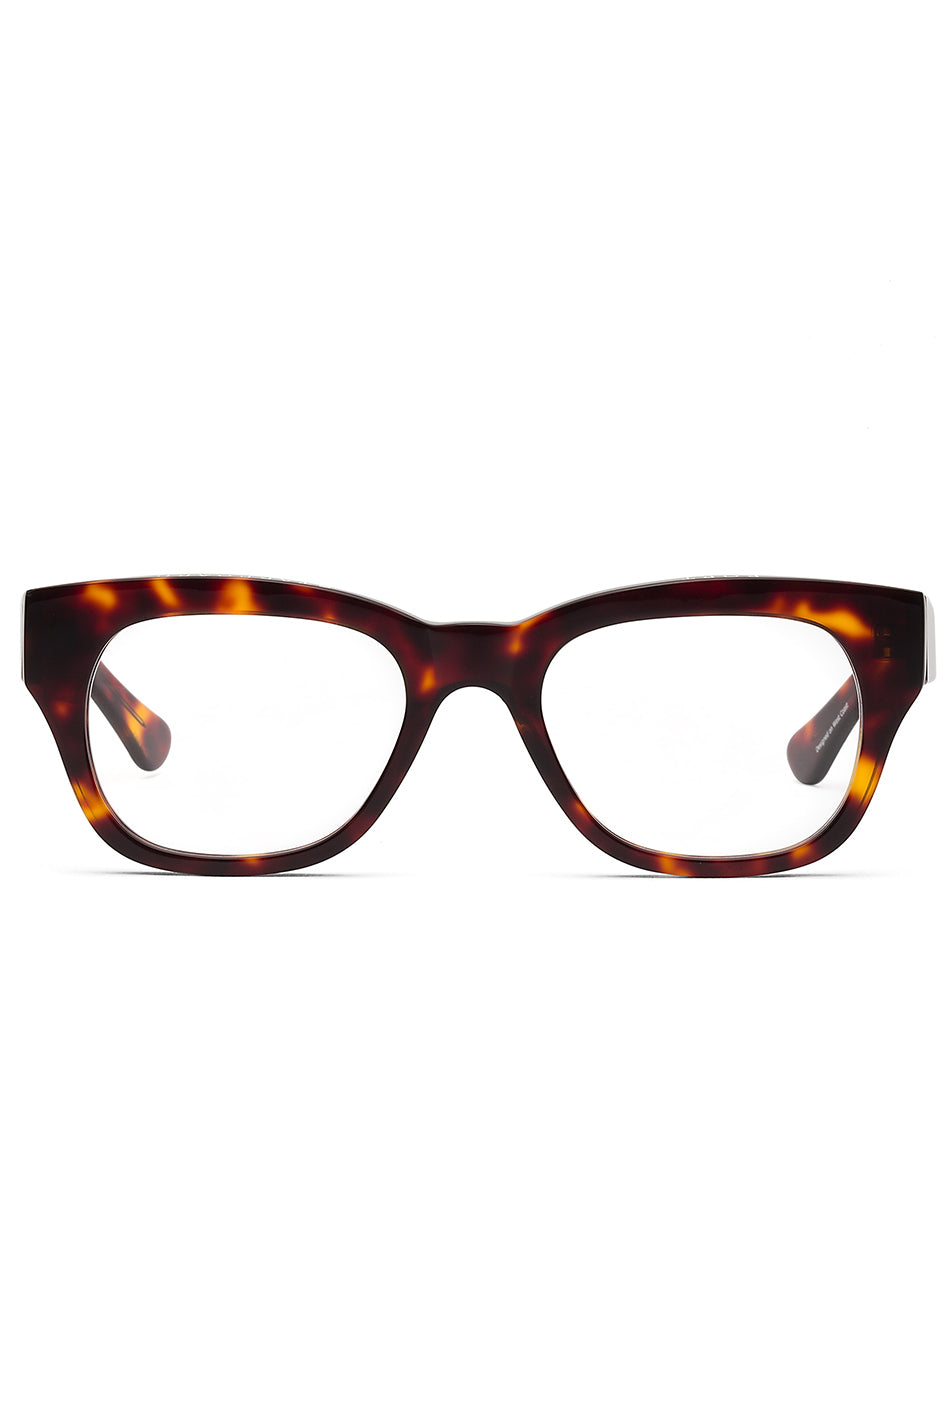 CADDIS - MIKLOS reader glasses, turtle